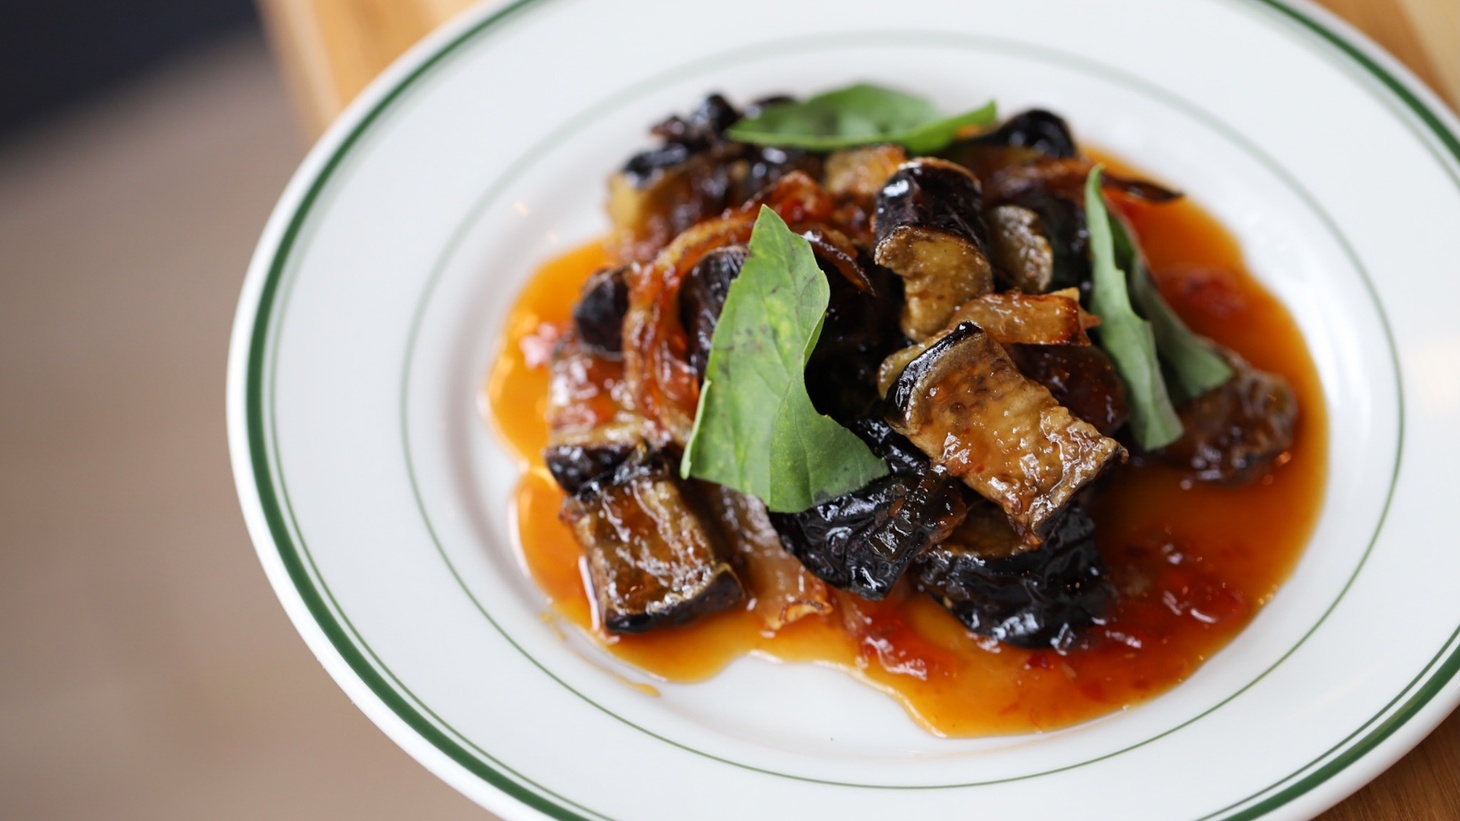 A side dish of Japanese eggplant with Calabrian chili agrodolce is how Chef Chris Keyser of U Street Pizza and Union in Pasadena is putting this nightshade to work.